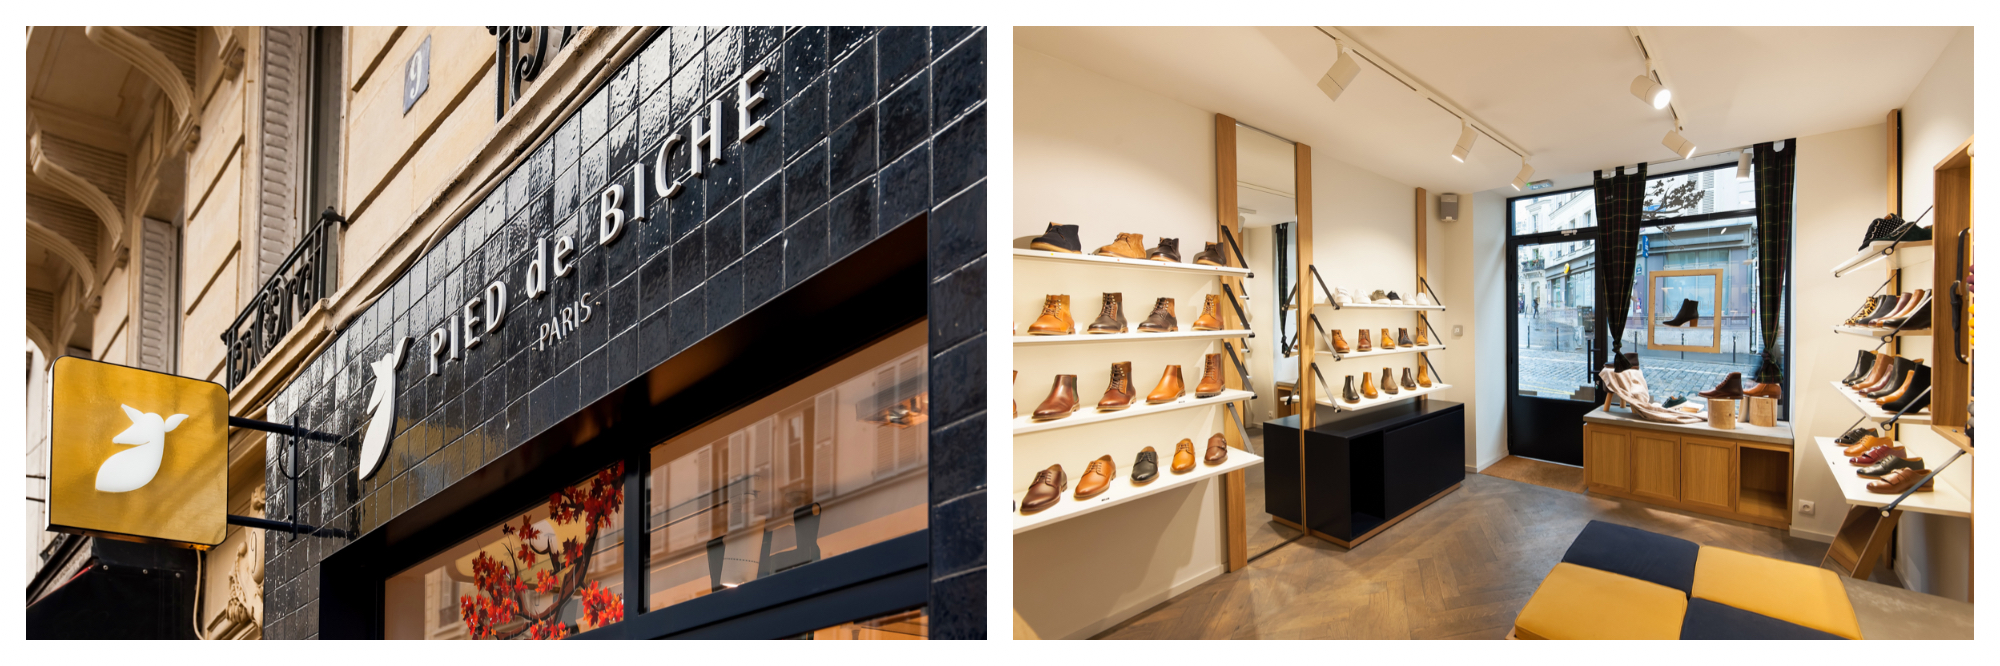 The petrol blue tiled exterior of the Pied de Biche French shoe shop in Paris (left) and the interior (right).